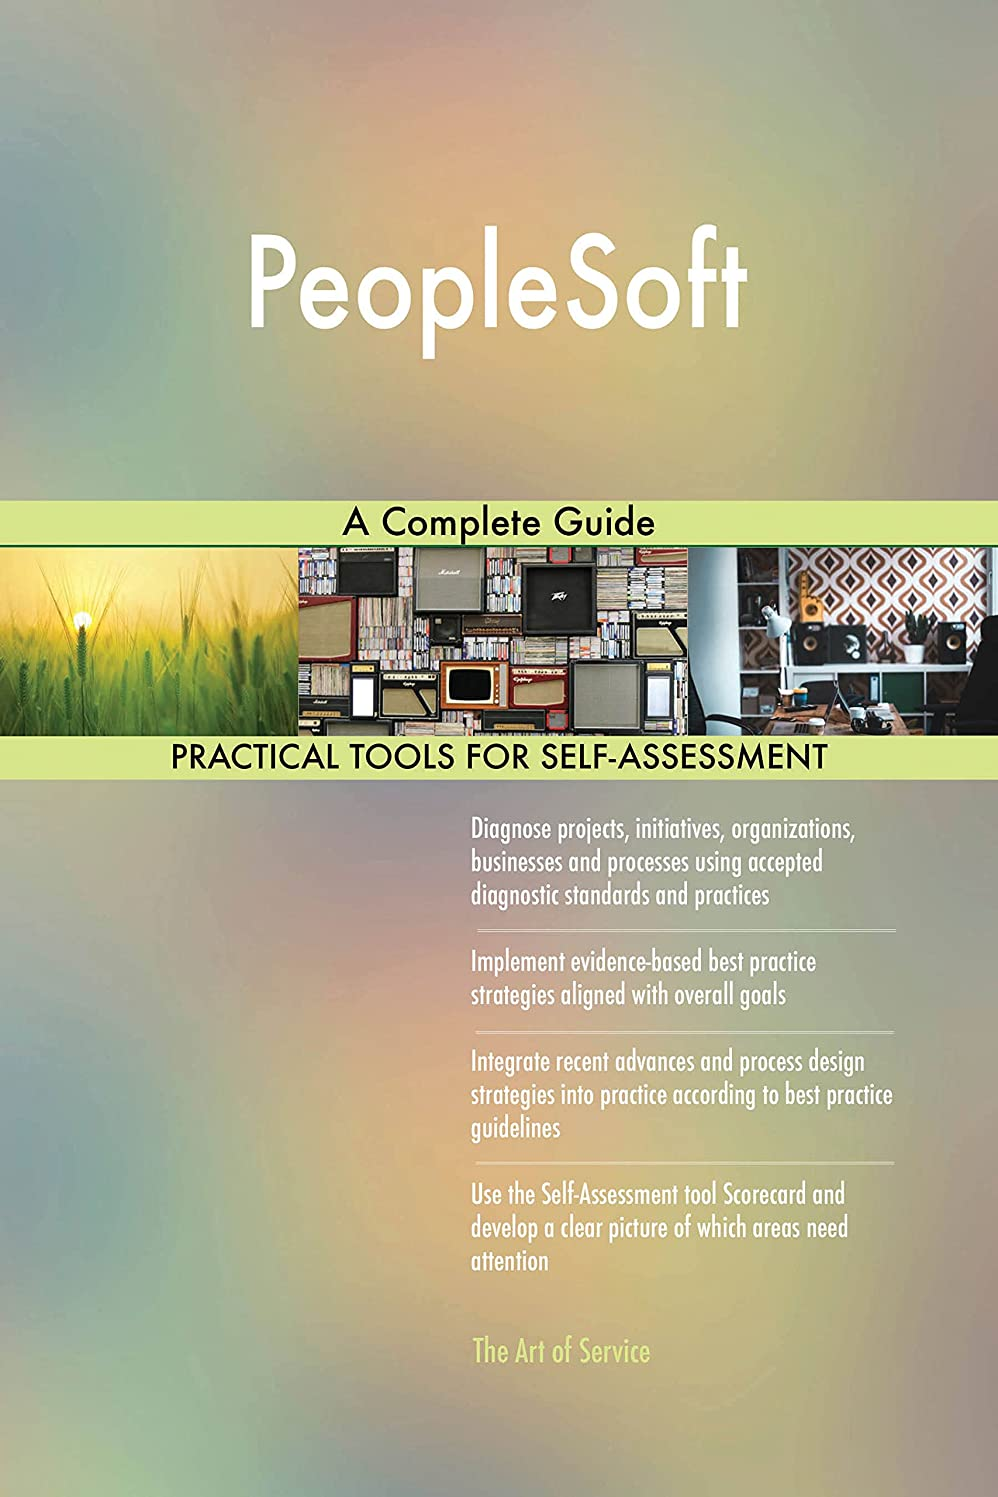 生むテスピアン家庭PeopleSoft: A Complete Guide (English Edition)